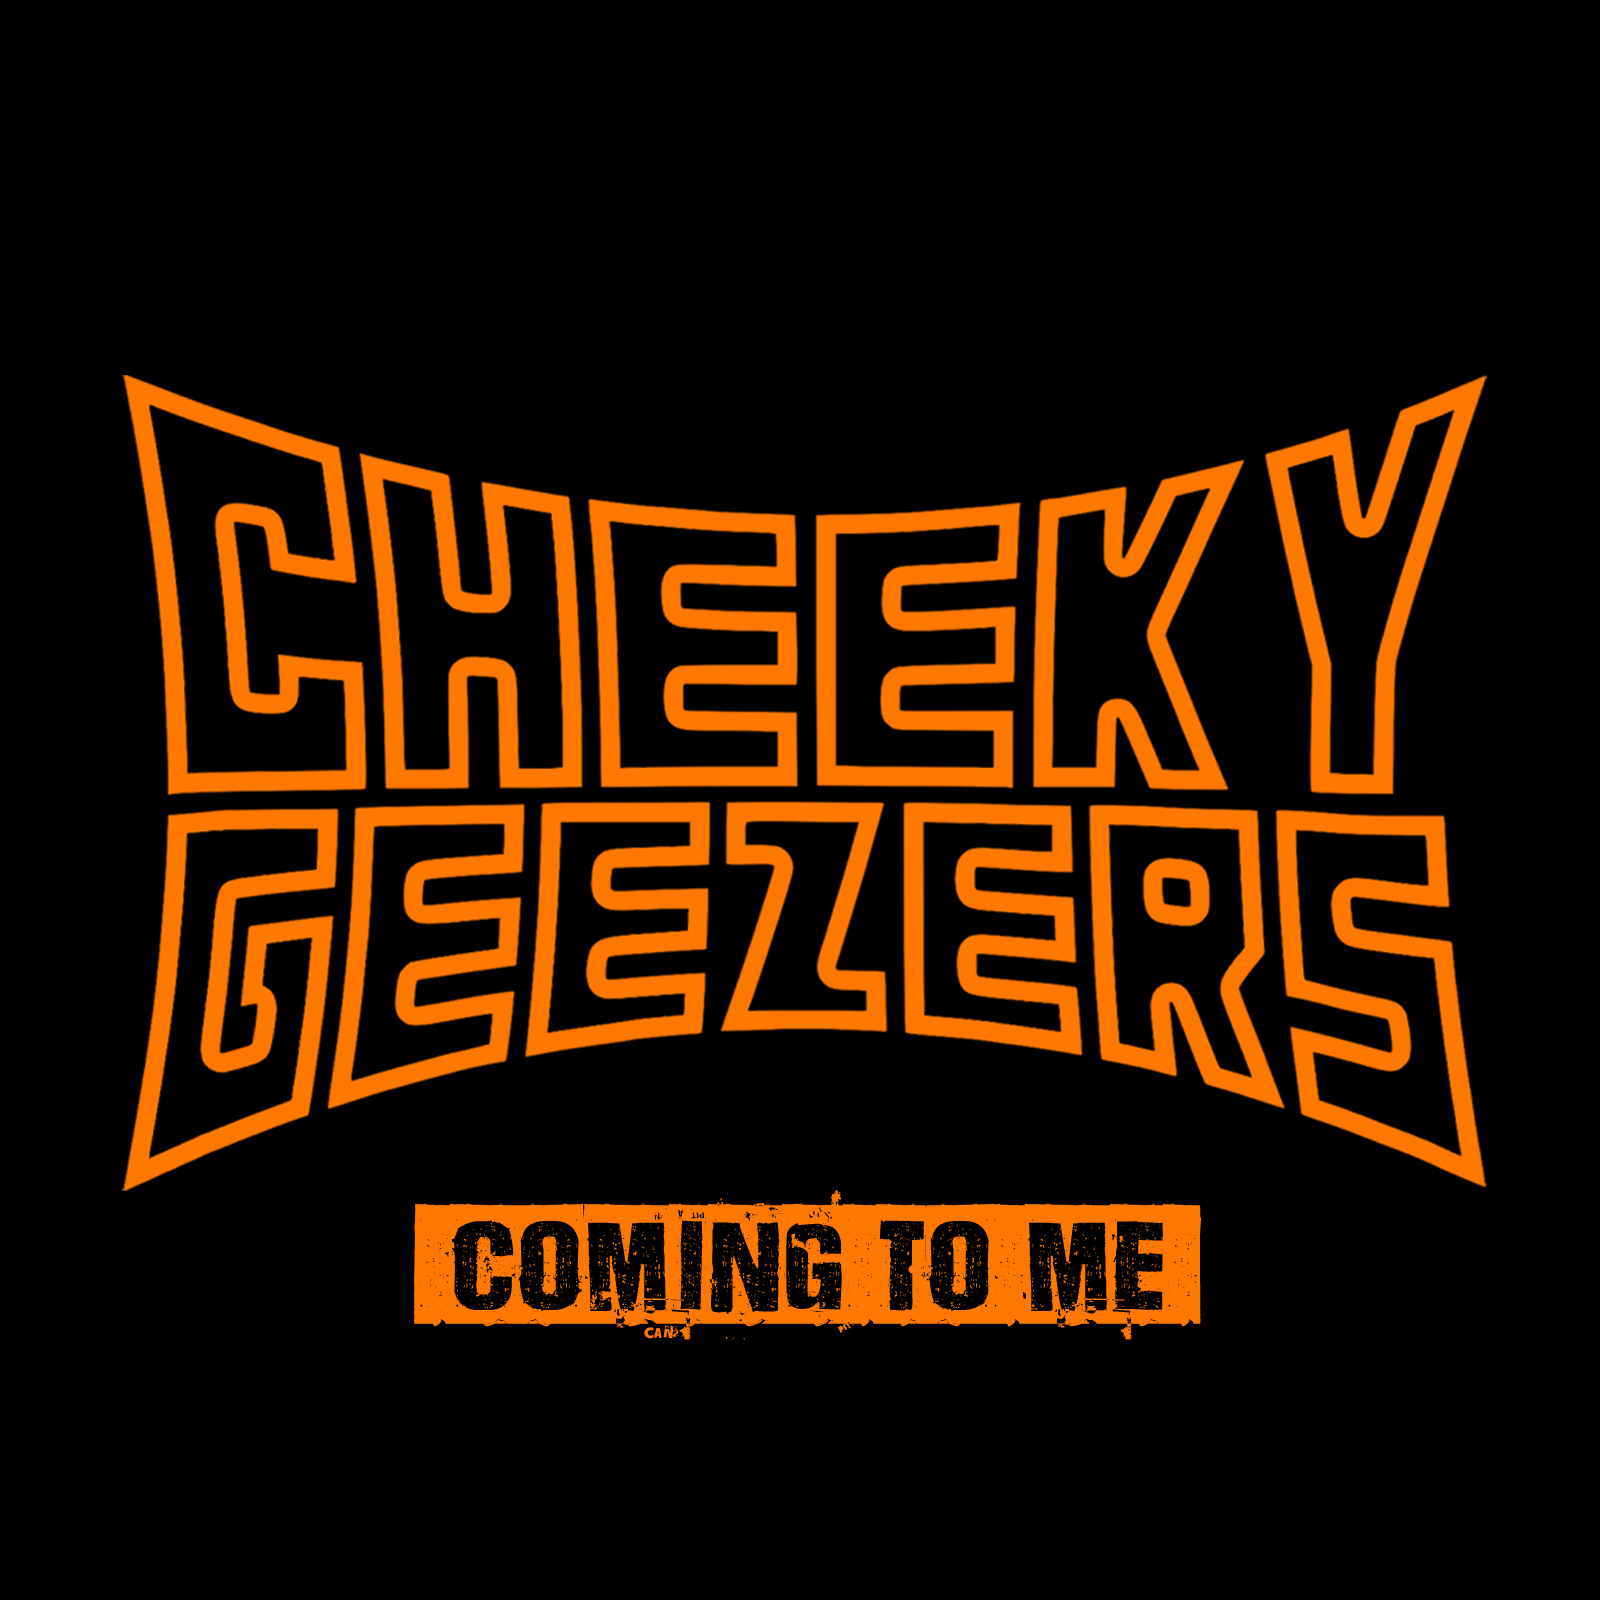 Cheeky Geezers - Coming to Me